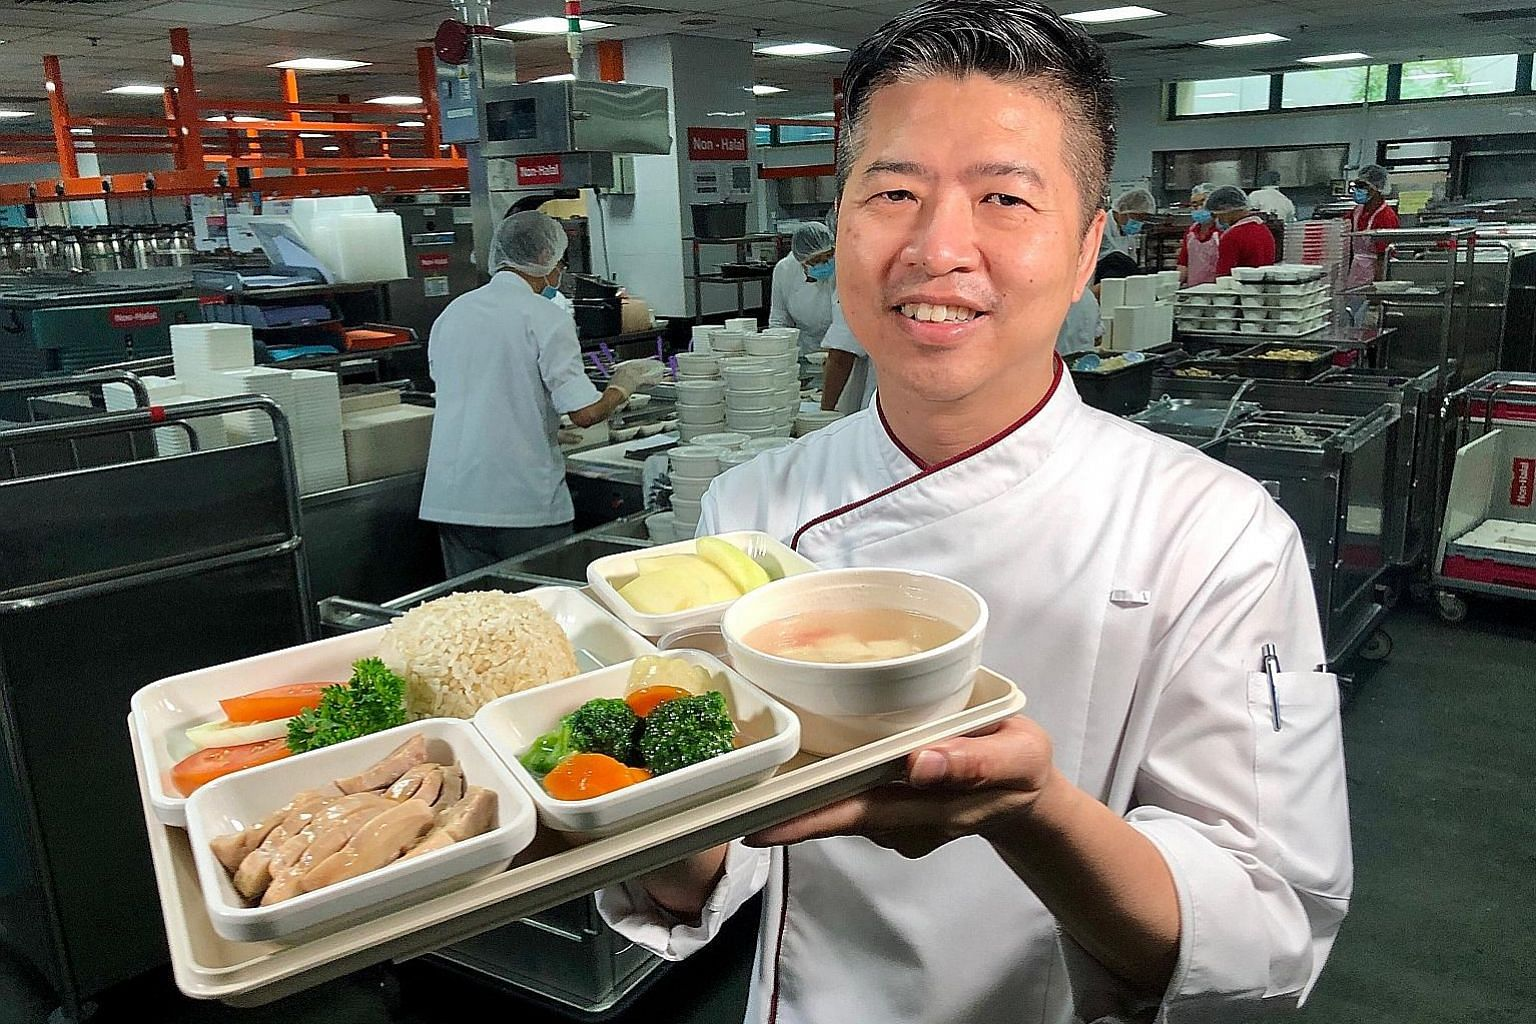 Tan Tock Seng Hospital's senior production chef Leo Yuin Thim with Poached Hainanese Chicken served with mixed brown rice.